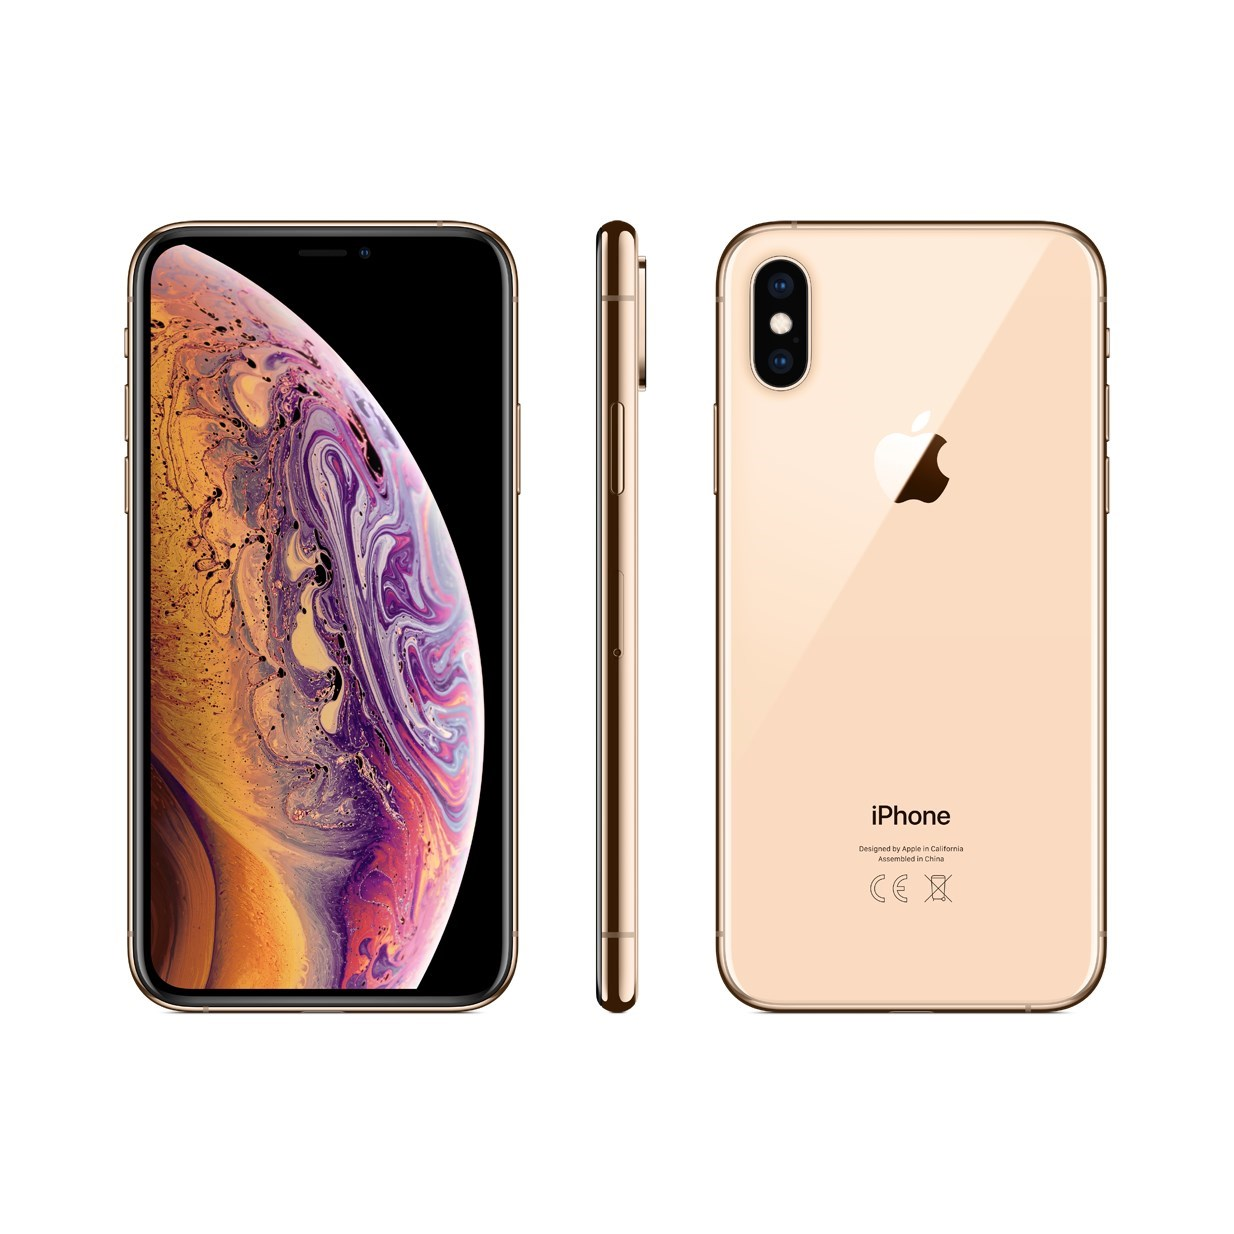 Image of Apple iPhone XS 256GB Dual sim (nano-SIM & eSIM) A1920 With Generic Tempered Glass Screen Protector- Gold